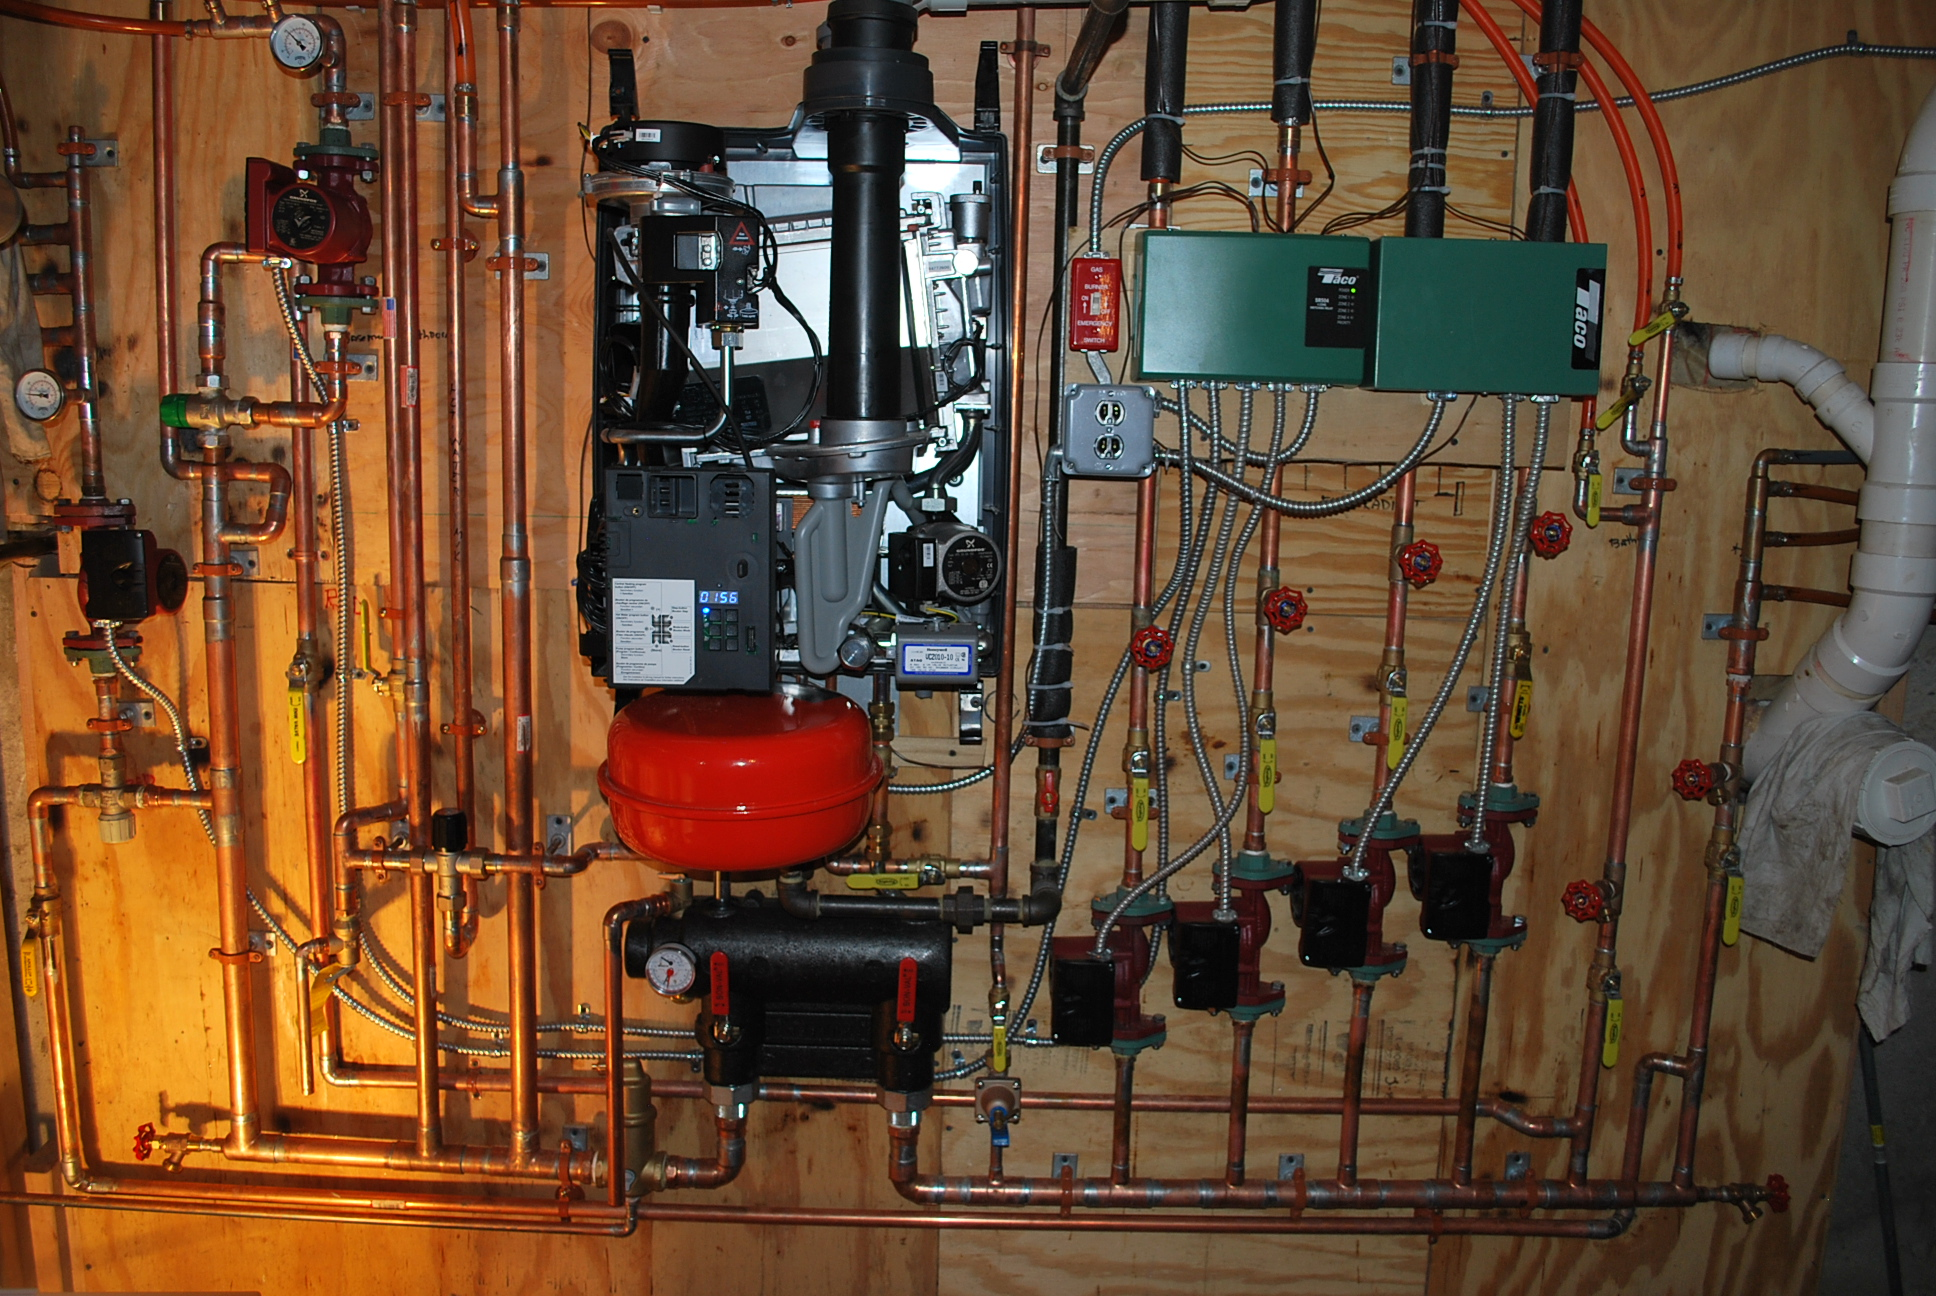 Piping Radiant Heat Mixing Valve Heating Help The Wall